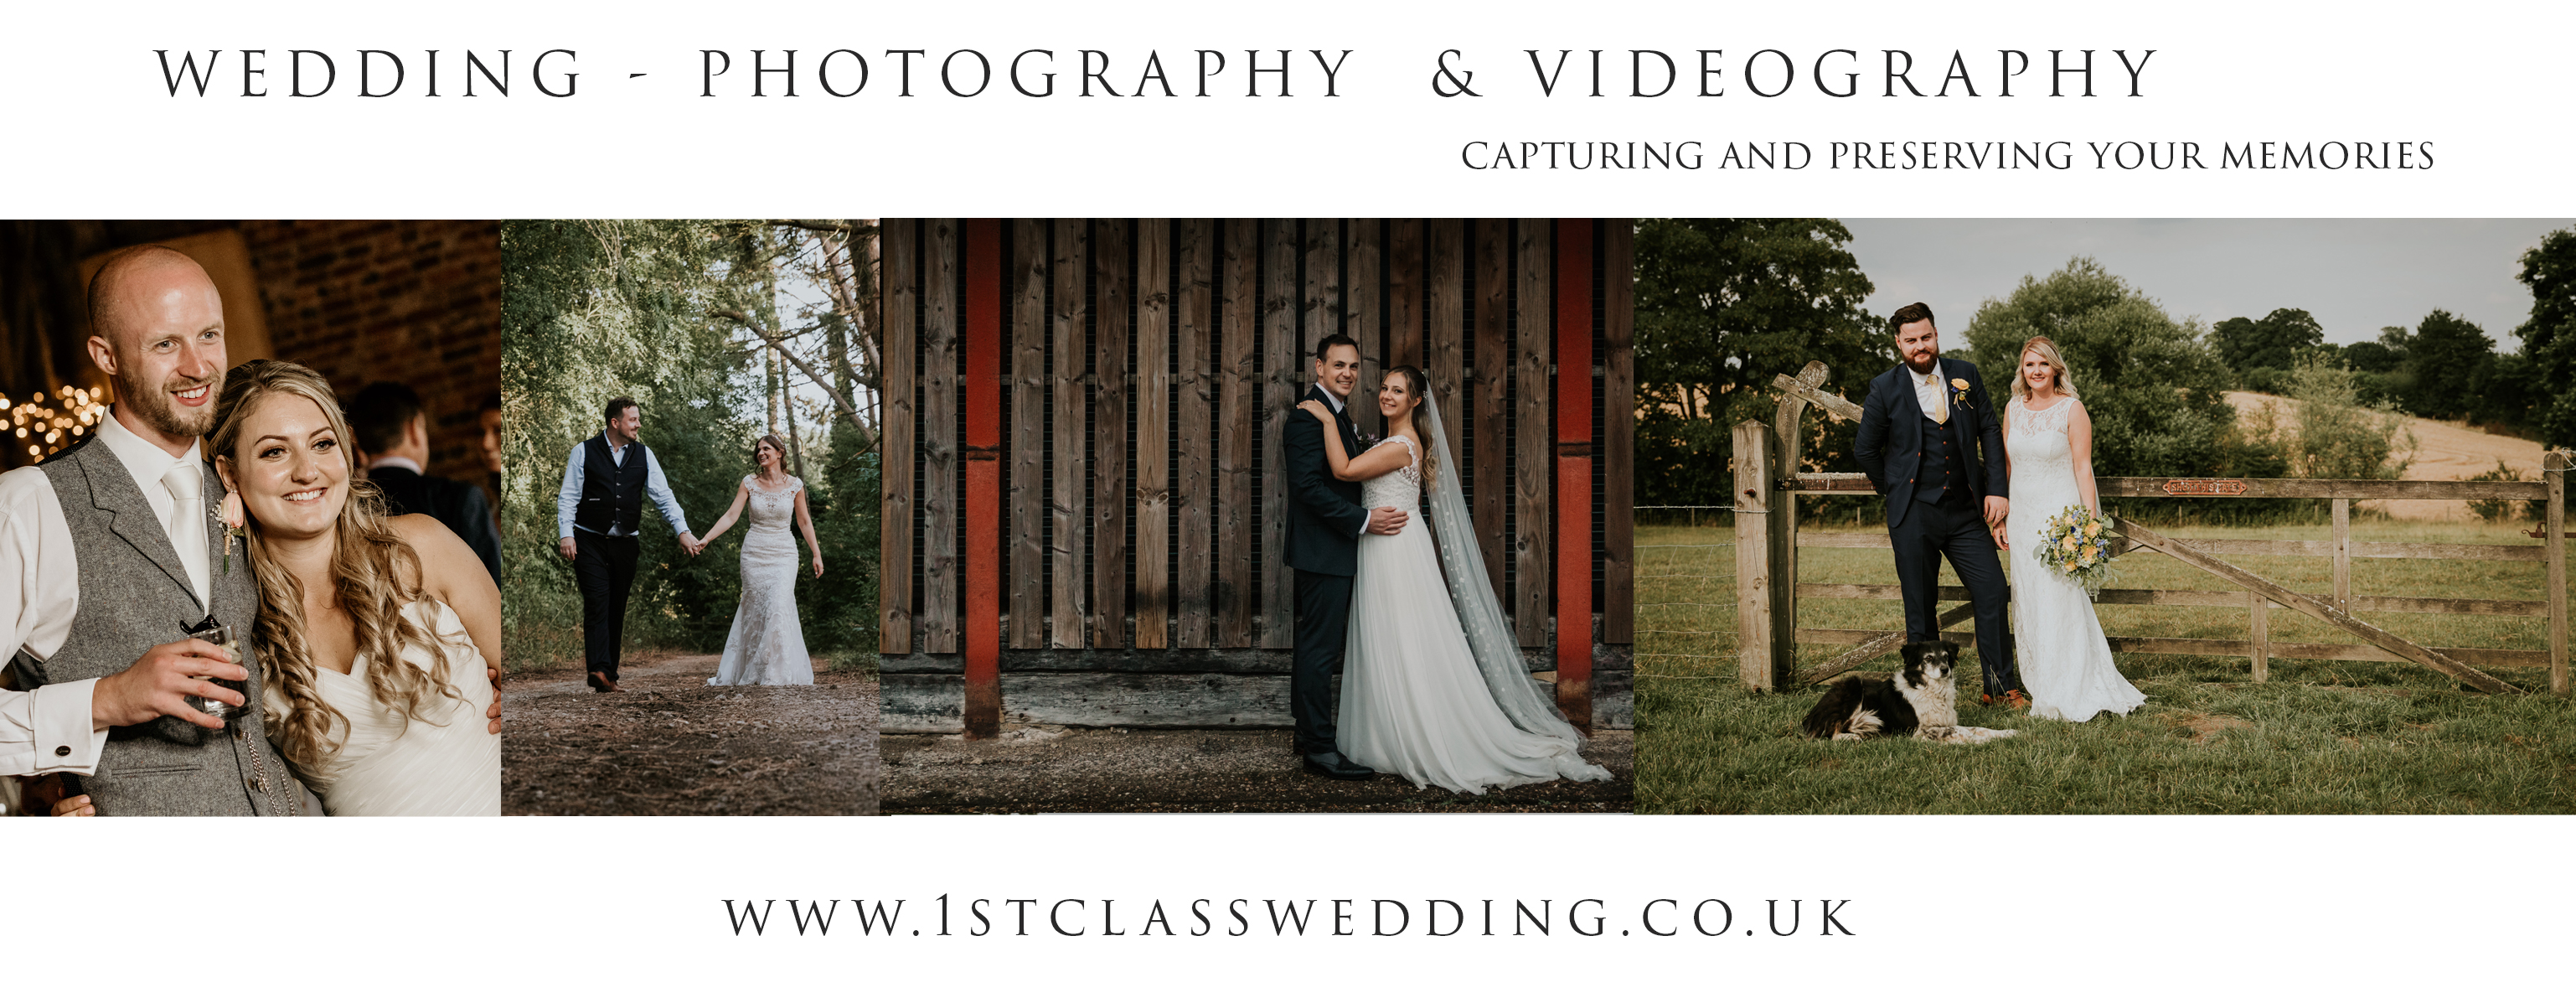 1st Class Wedding Photography & Videography